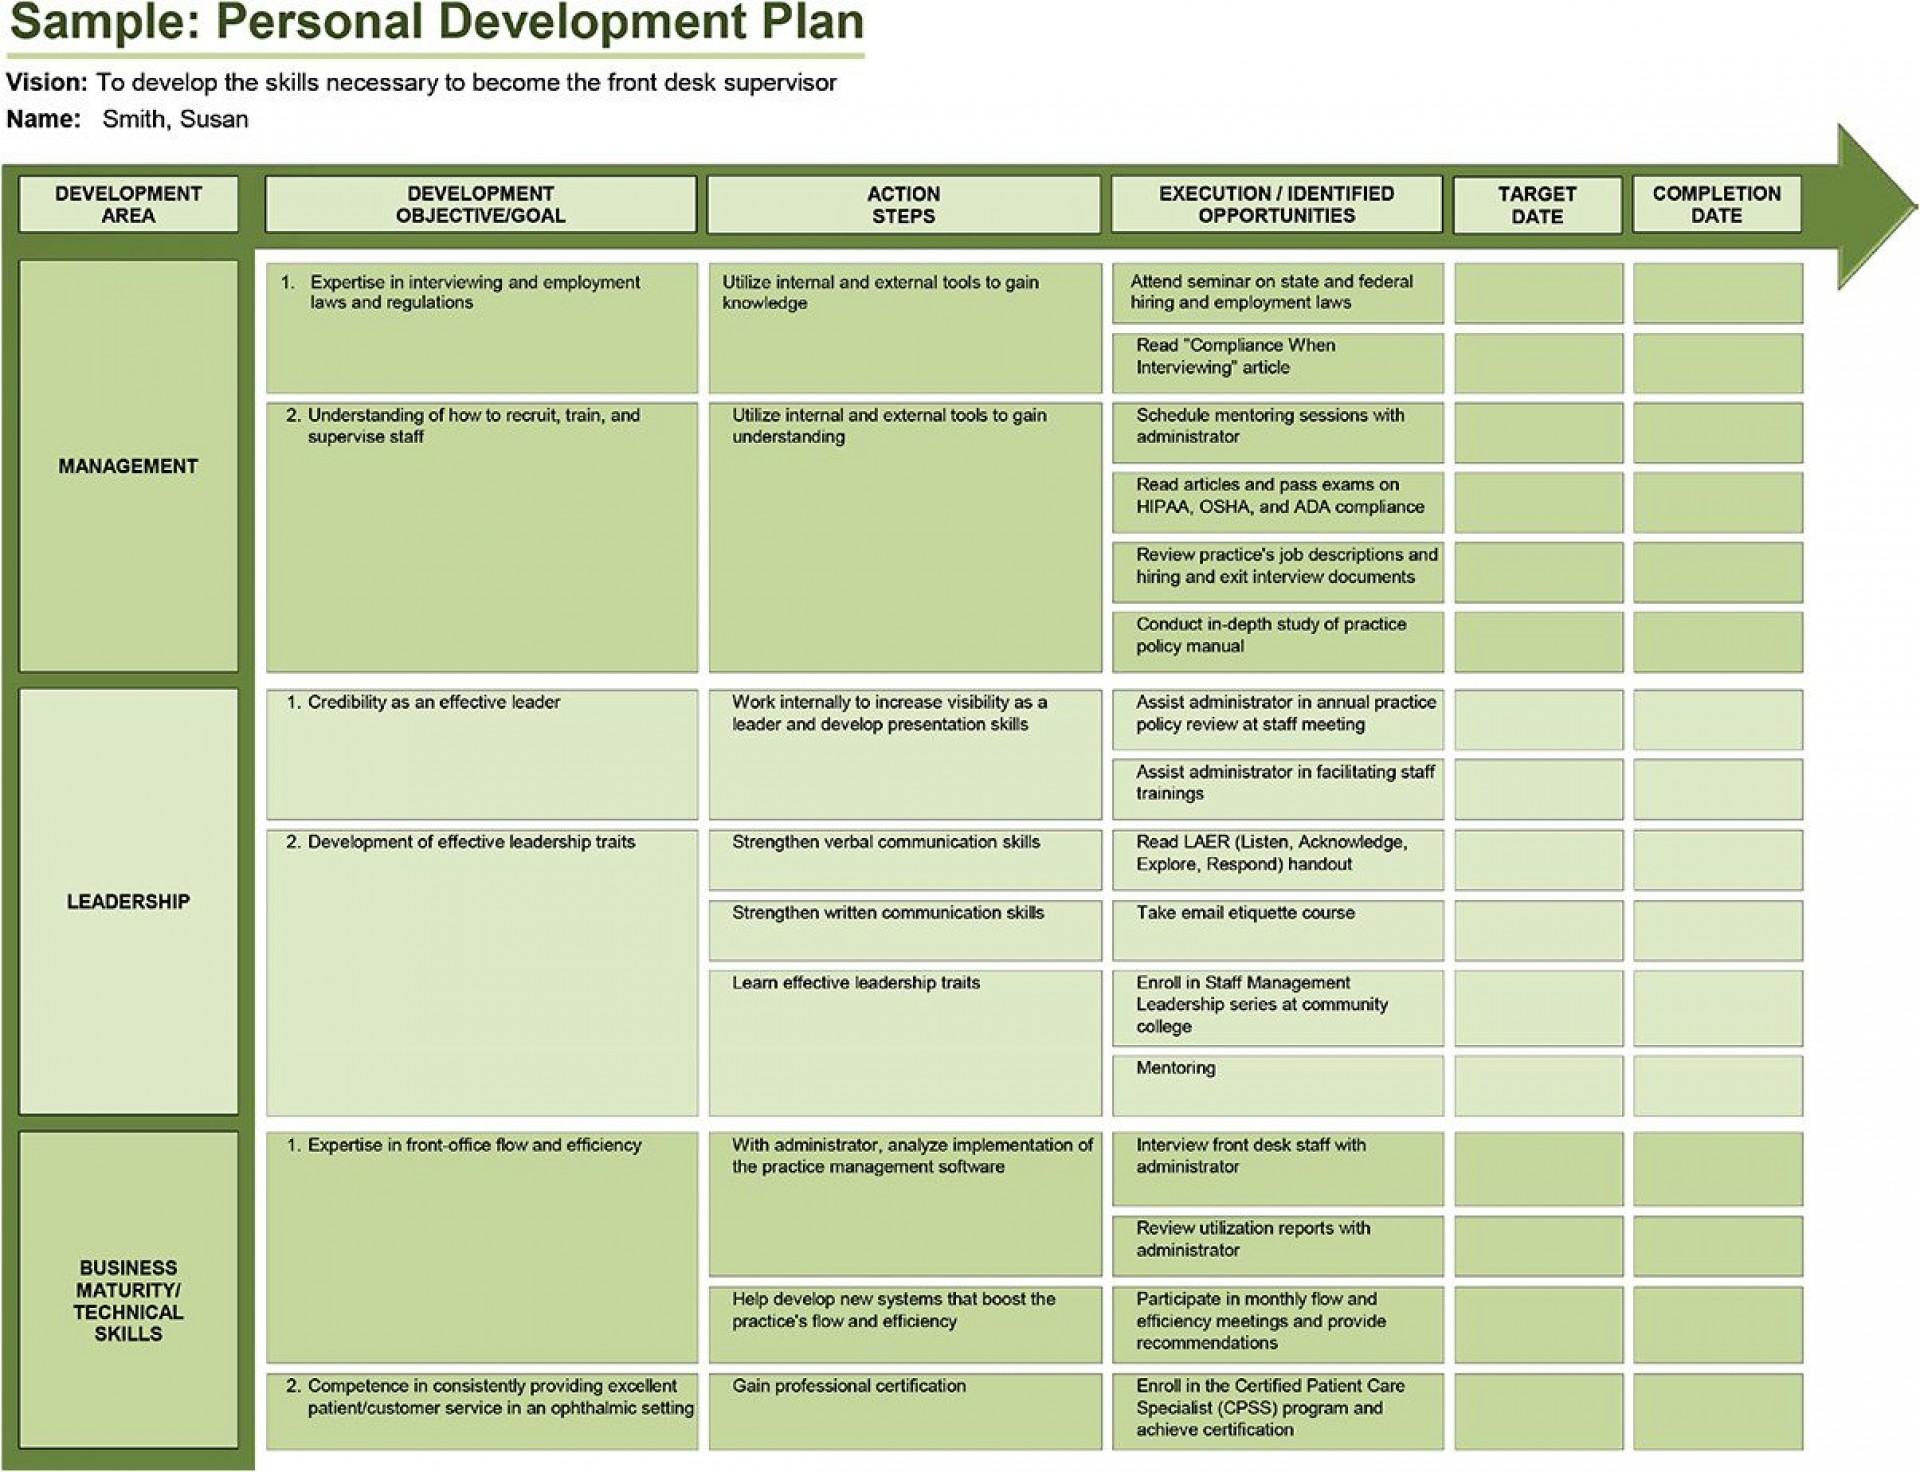 005 Rare Professional Development Plan Template For Employee High Definition  Example Sample1920